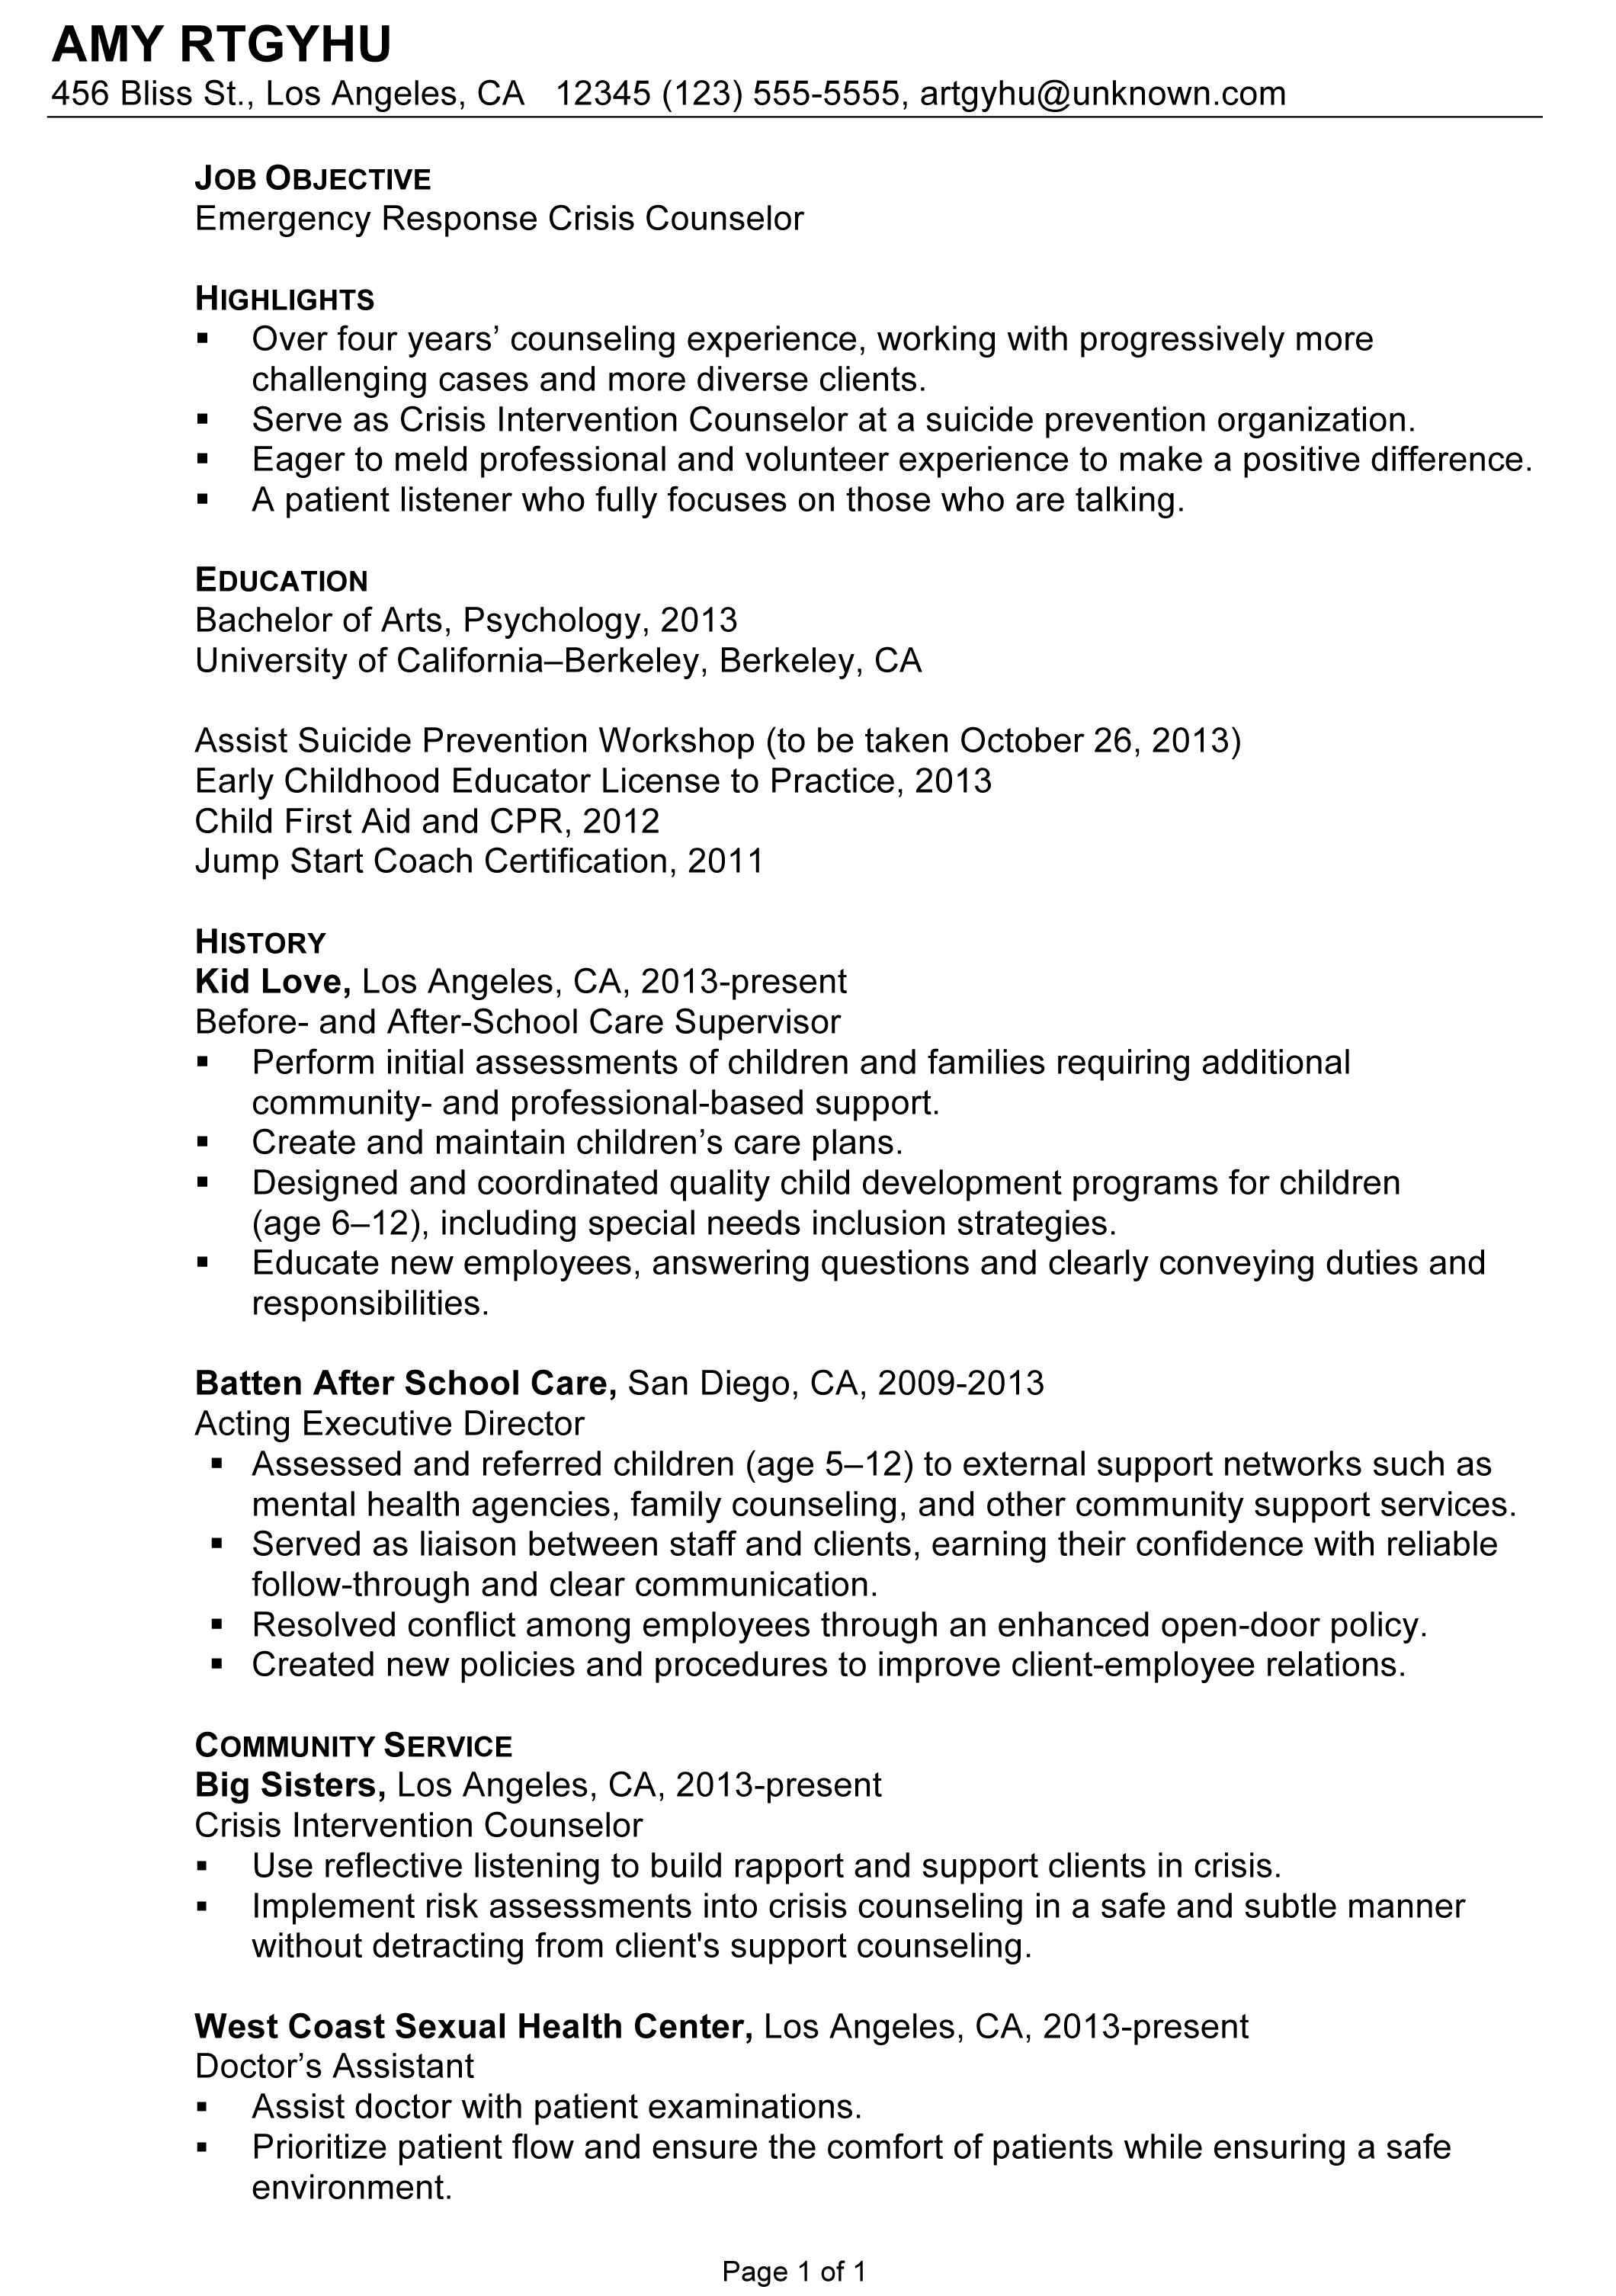 Chronological Resume Sample Chronological Resume Sample Emergency Response Crisis Counselor